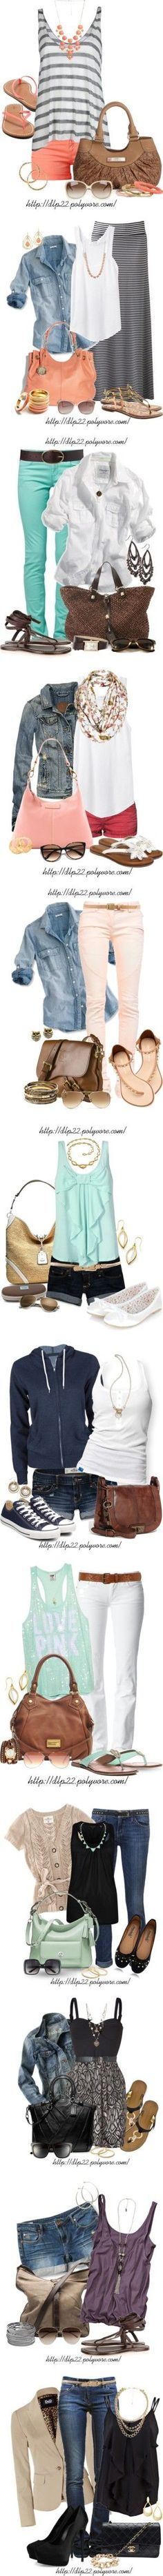 Fashion style Polyvore cf x Newssponsored designer collective feature for girls